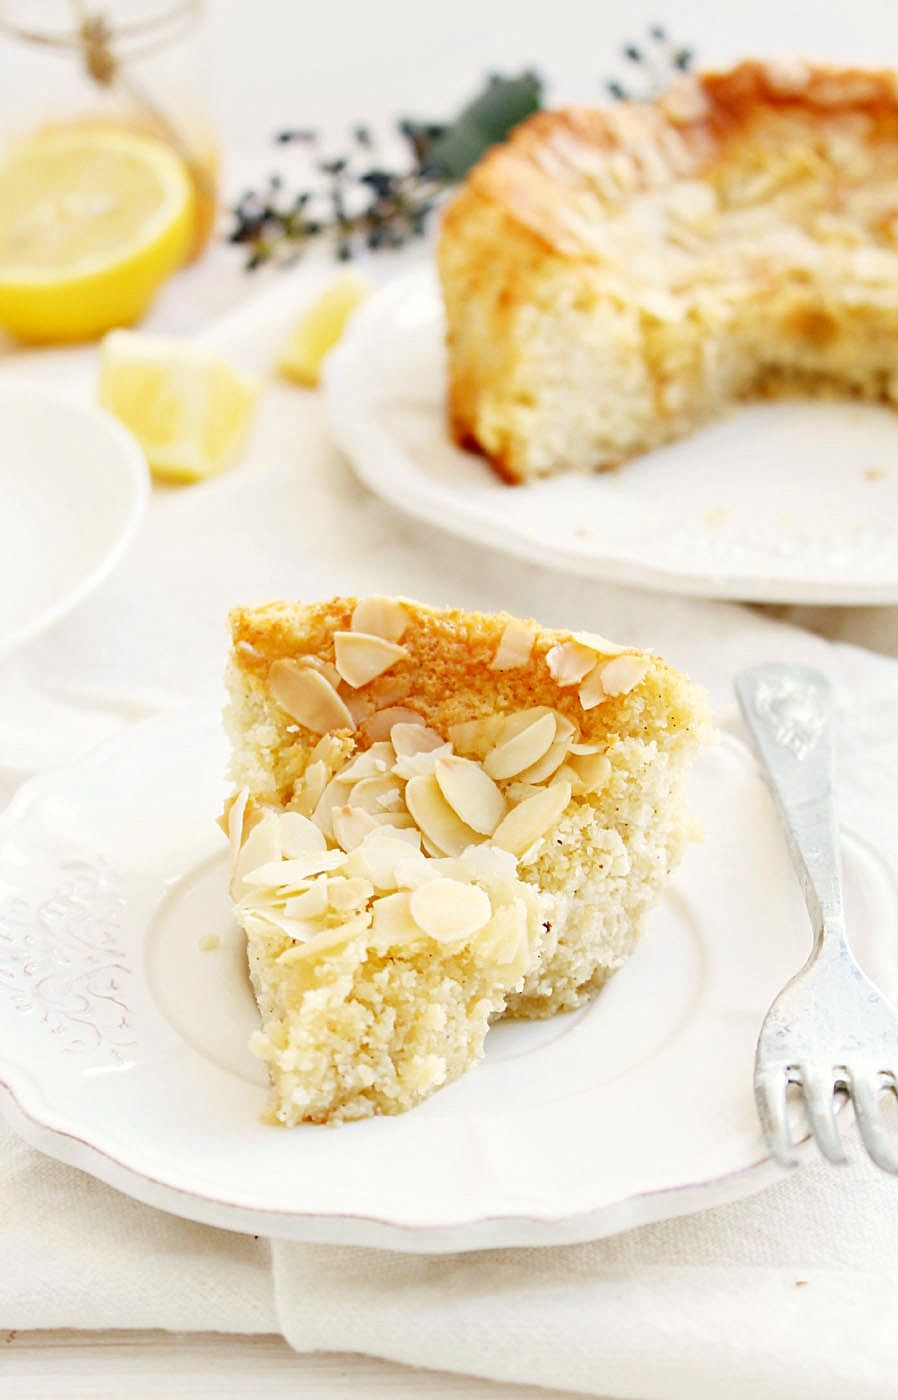 Explore Almond Meal Cake Almond Cake Recipes And More